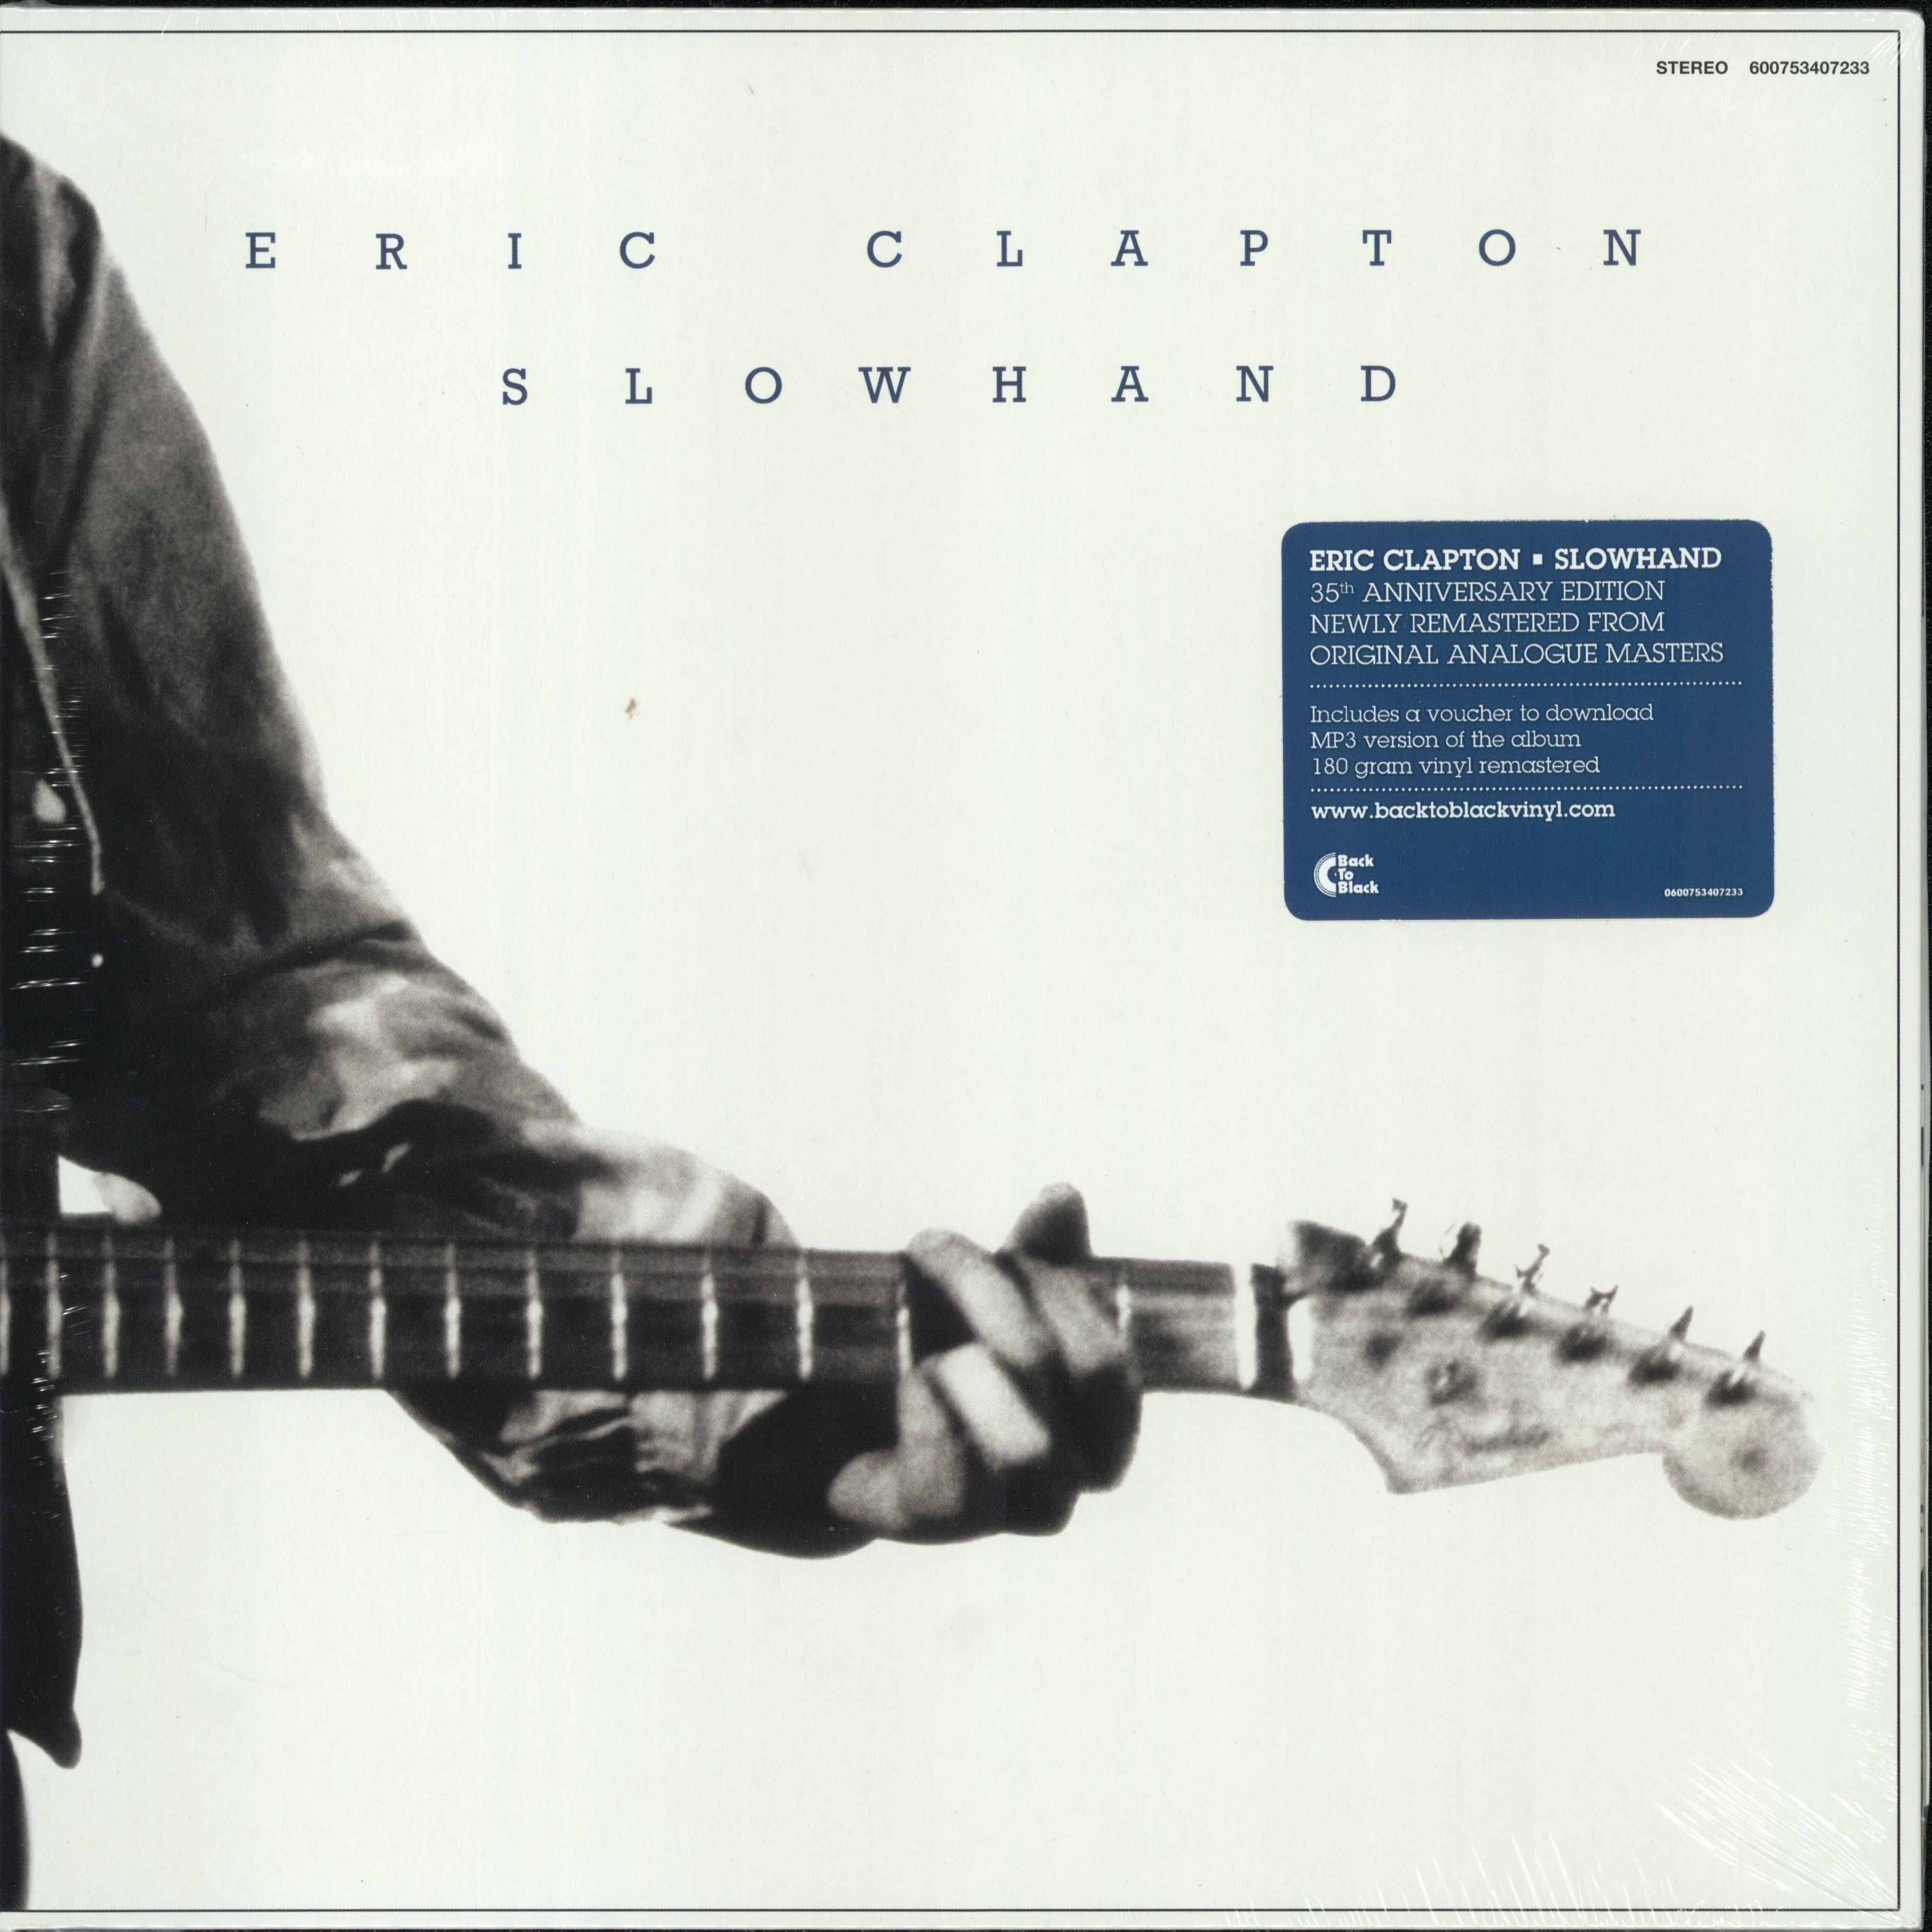 Eric Clapton - Clapton Chronicles - The Best of Eric ...